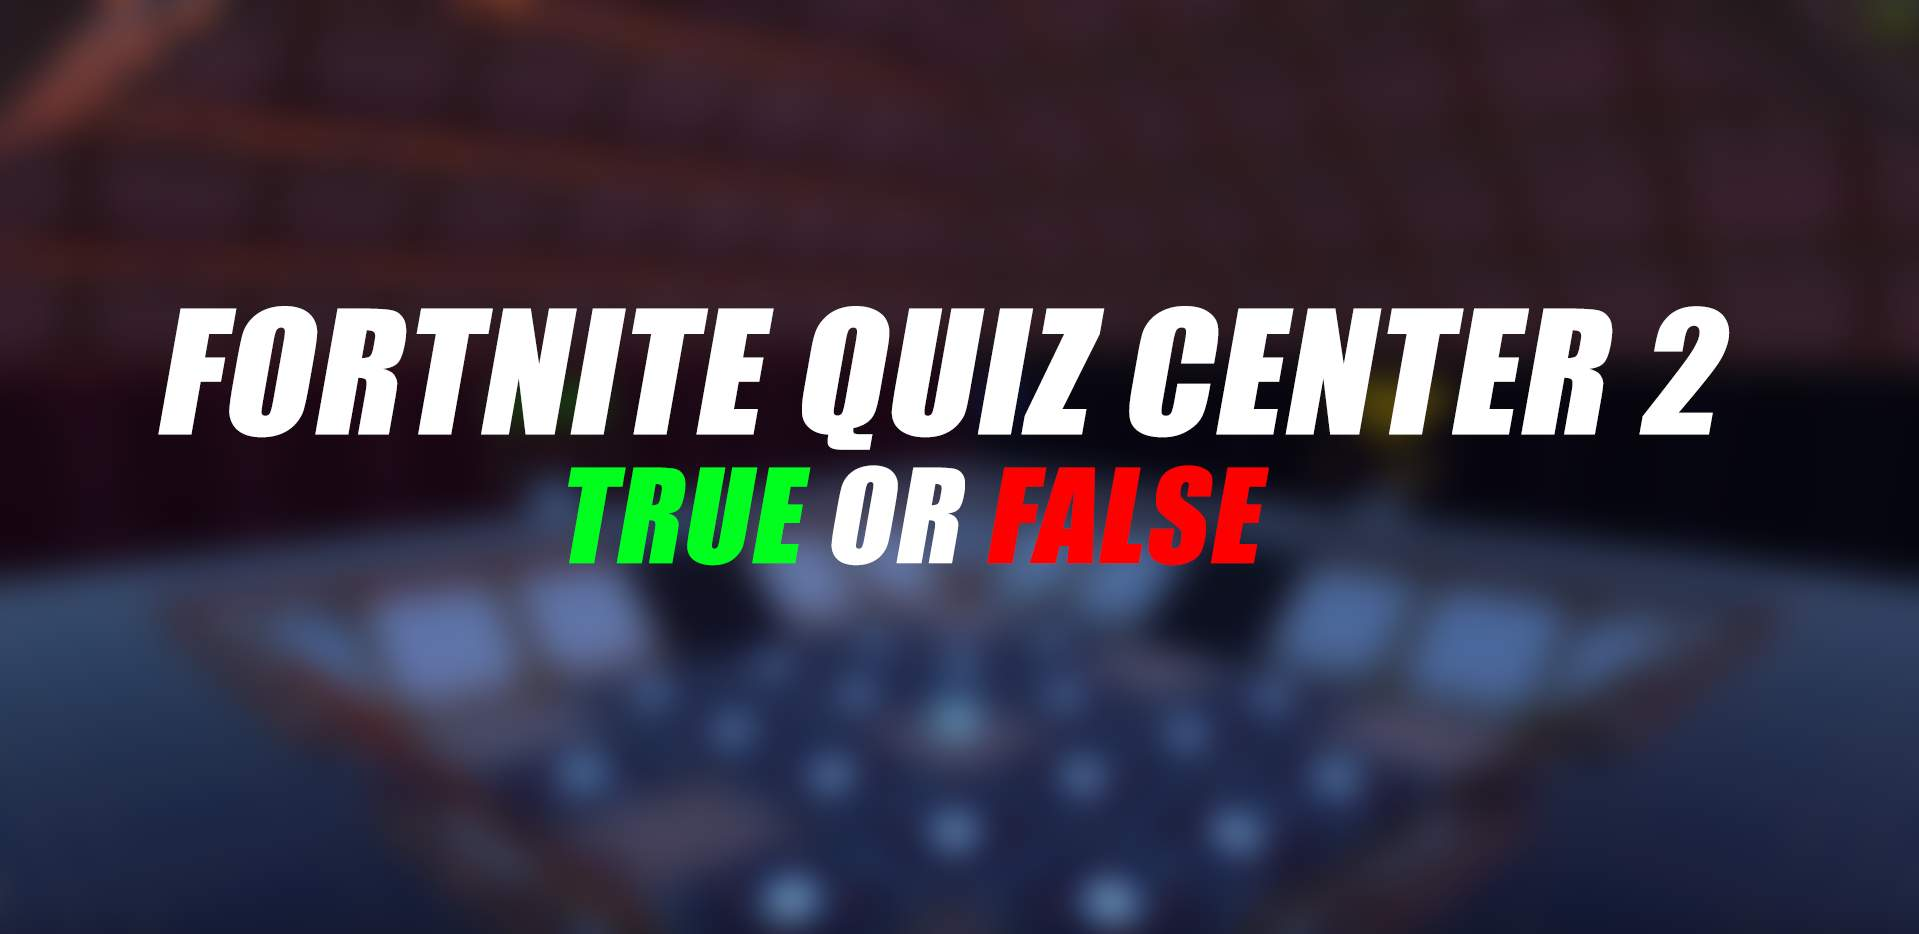 FORTNITE QUIZ CENTER V2  [TRUE OR FALSE]